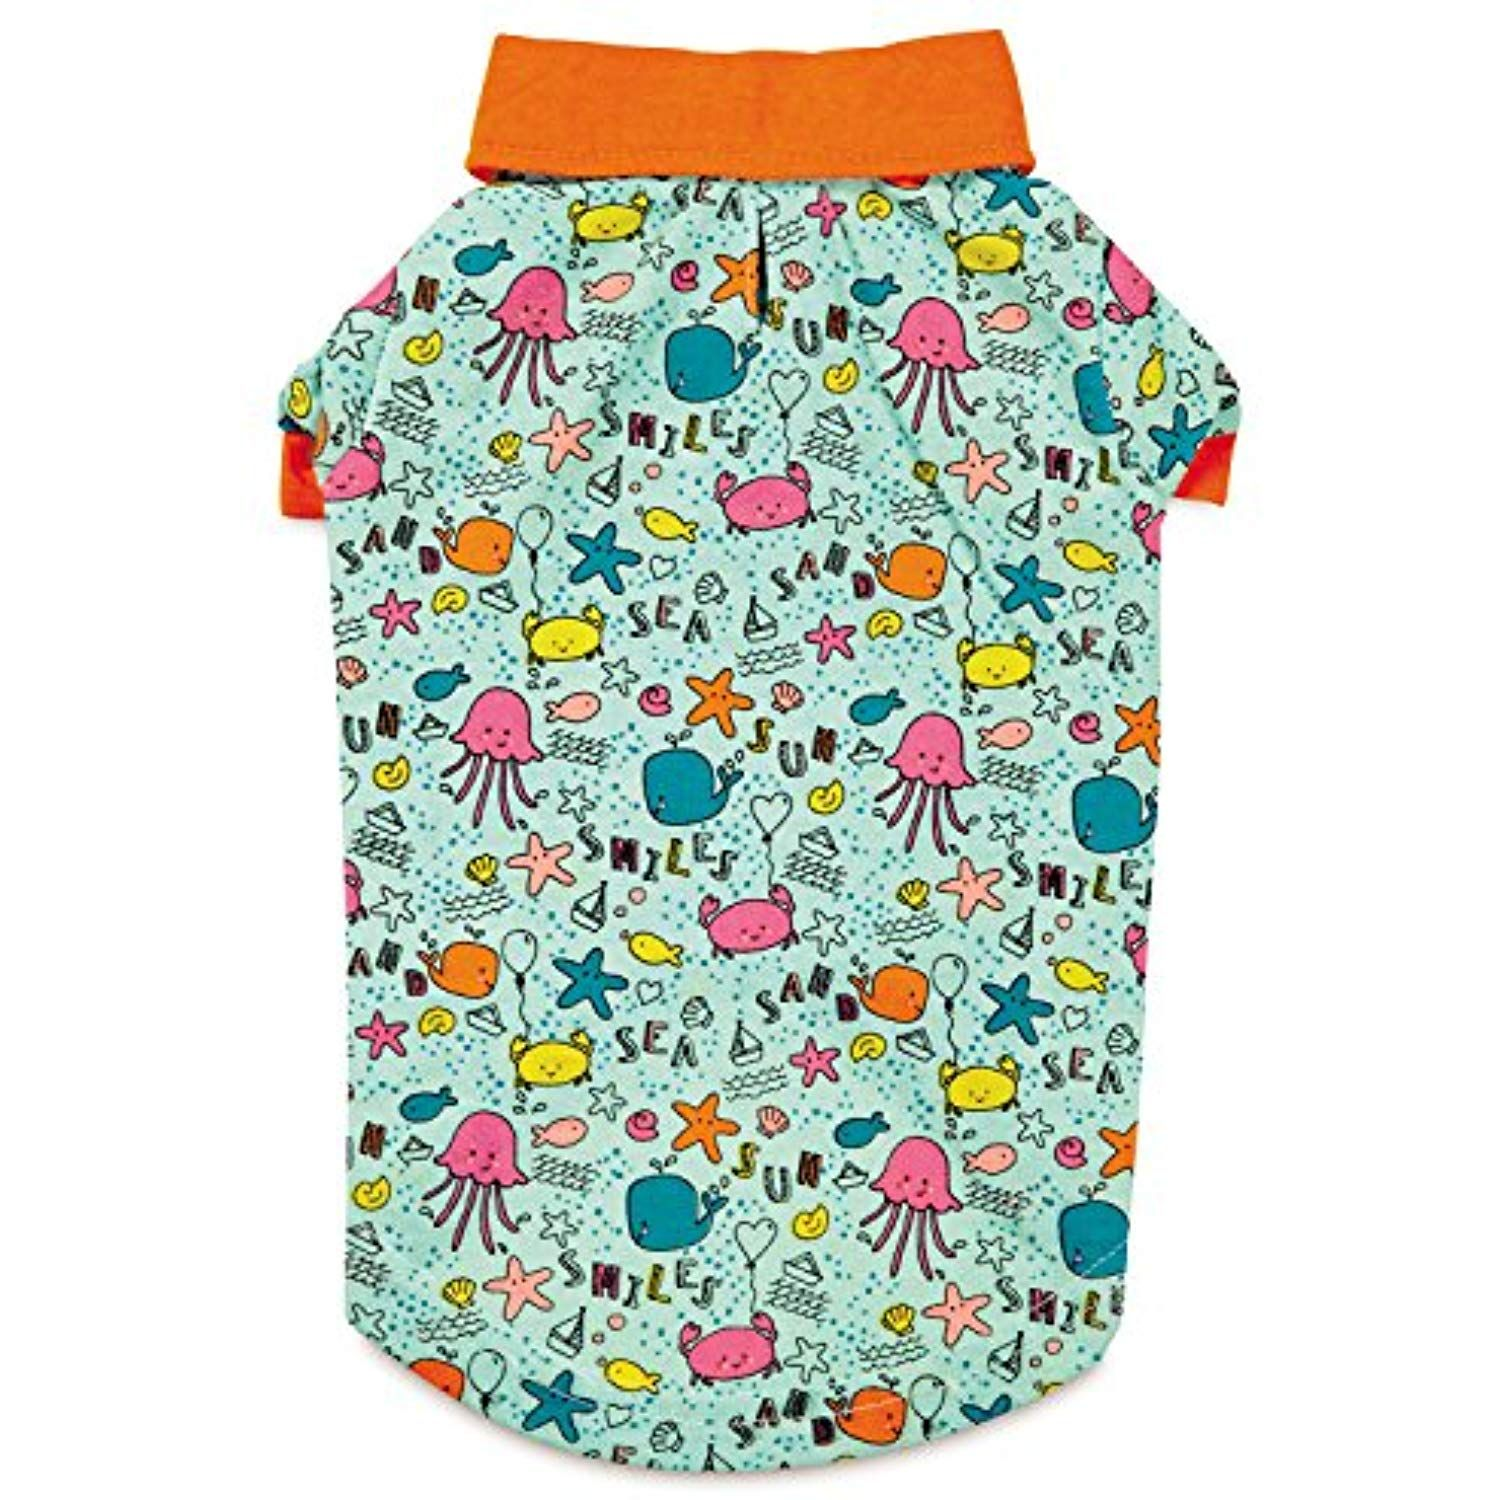 Zack And Zoey Sun And Sea Upf40 Polo Shirt For Dogs Large Blue Orange Read More At The Image Link This Dog Shirt Small Dog Clothes Designer Dog Clothes